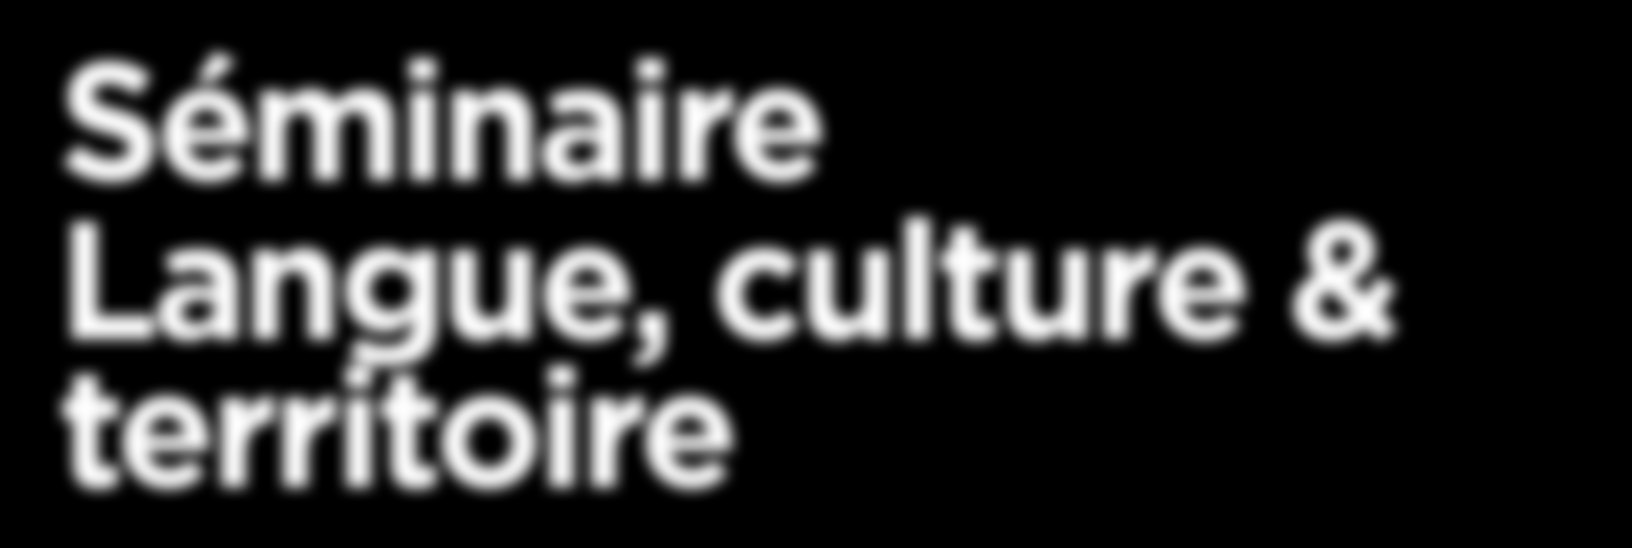 Séminaire Langue, culture & territoire Contact Solène